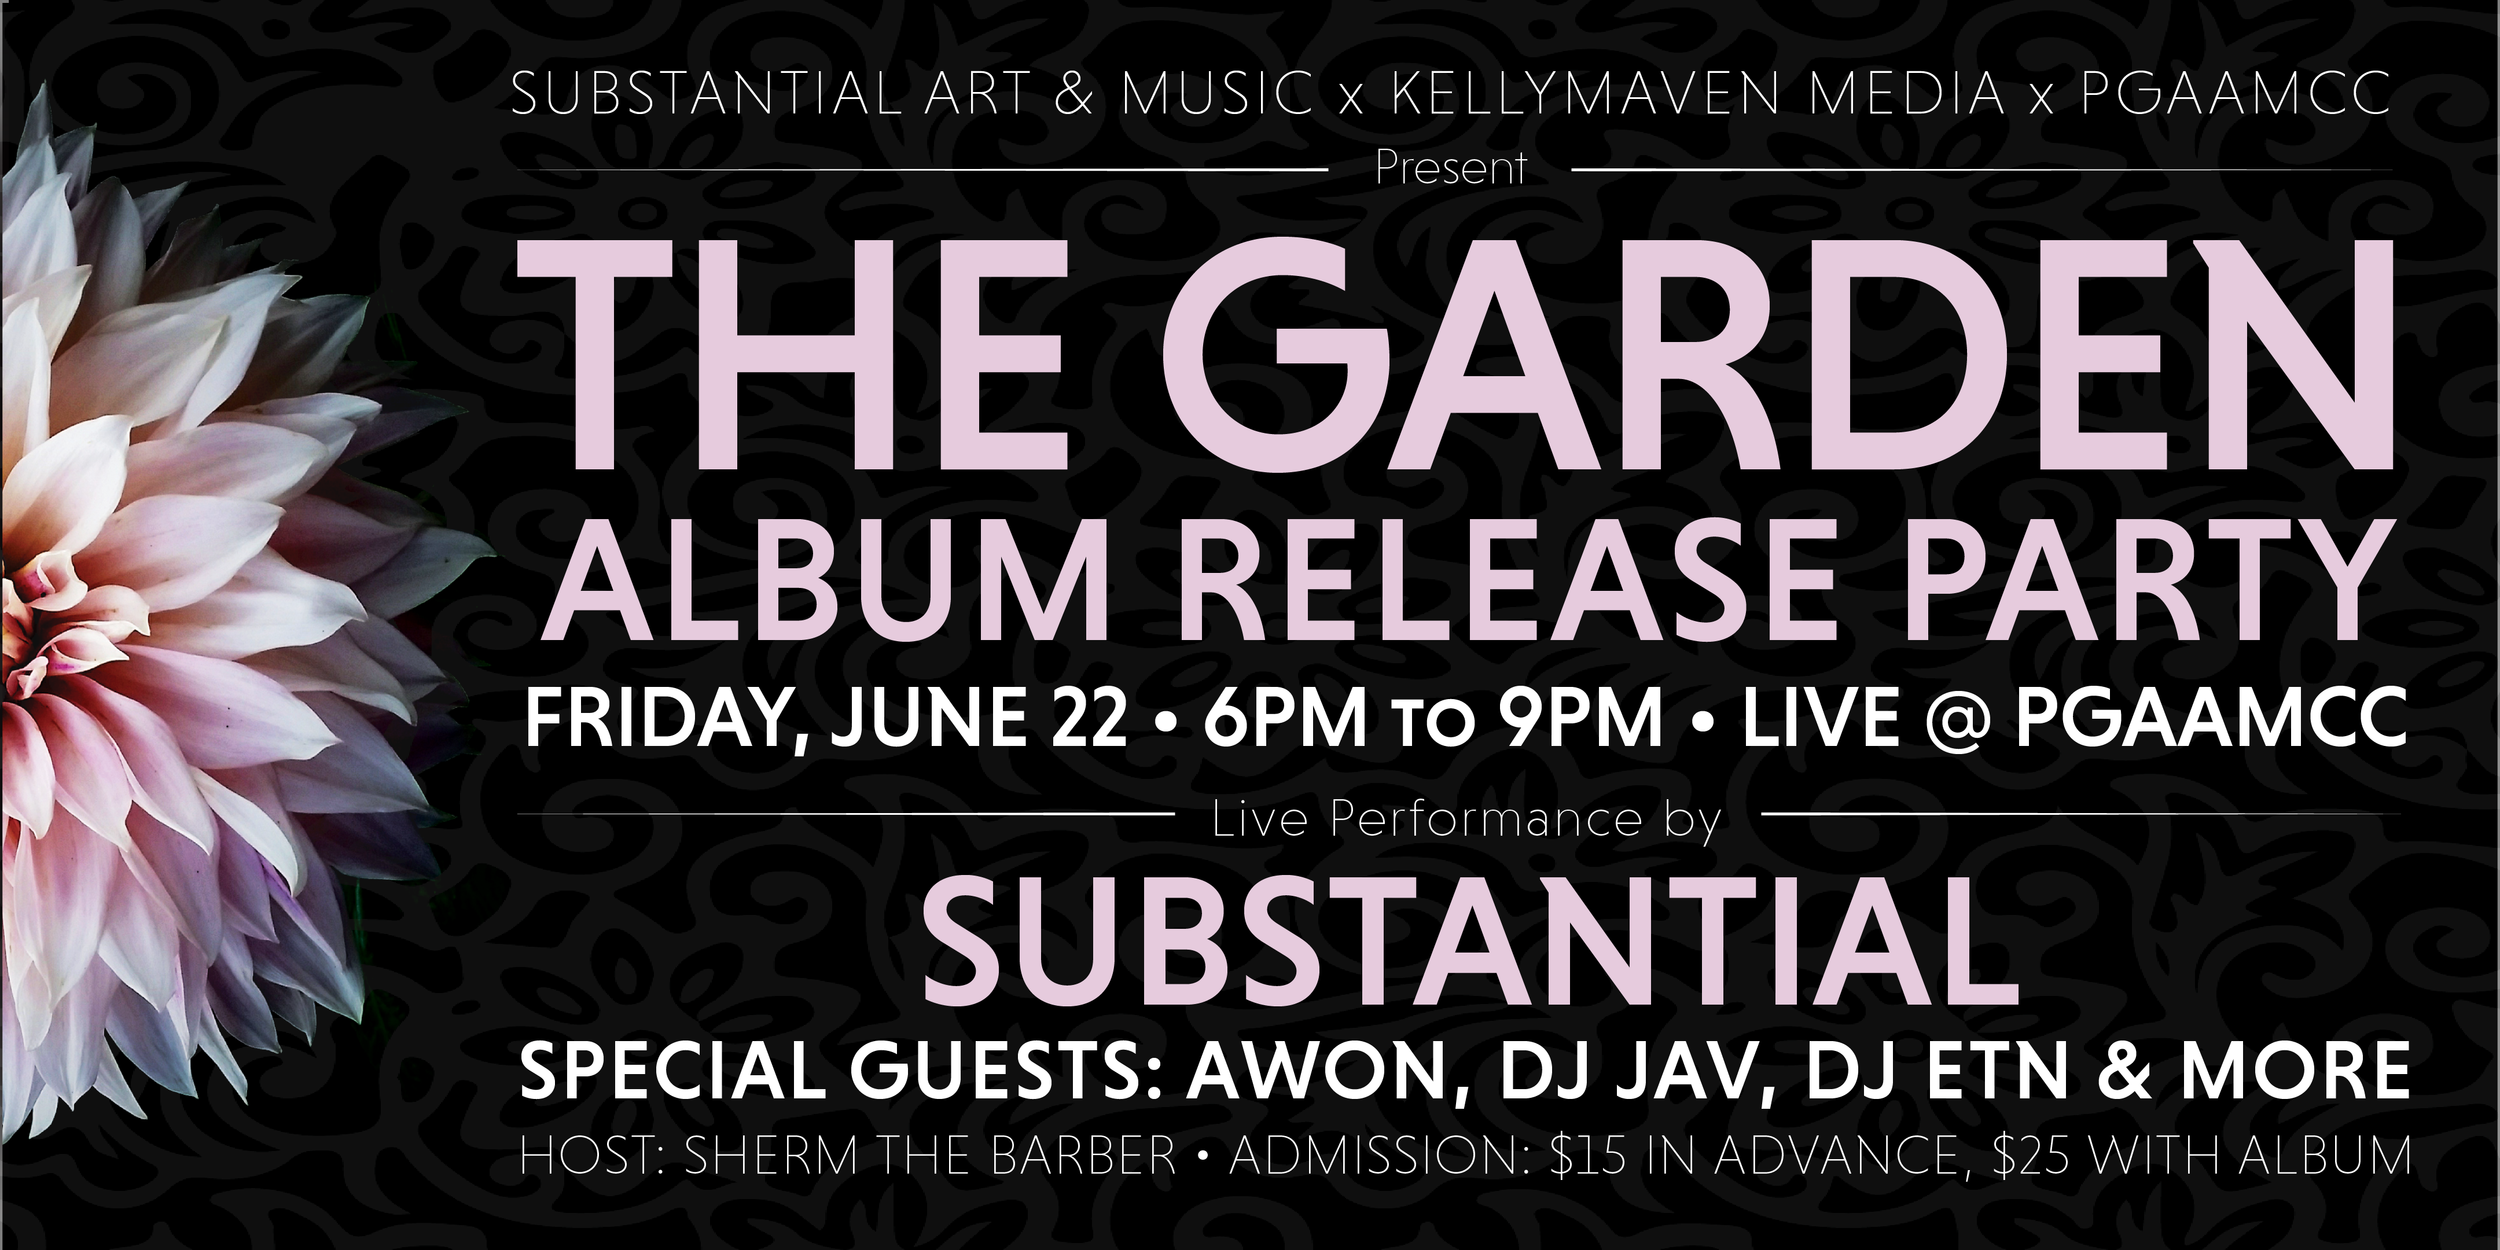 TheGarden-ReleaseParty-eb-flier-01.png